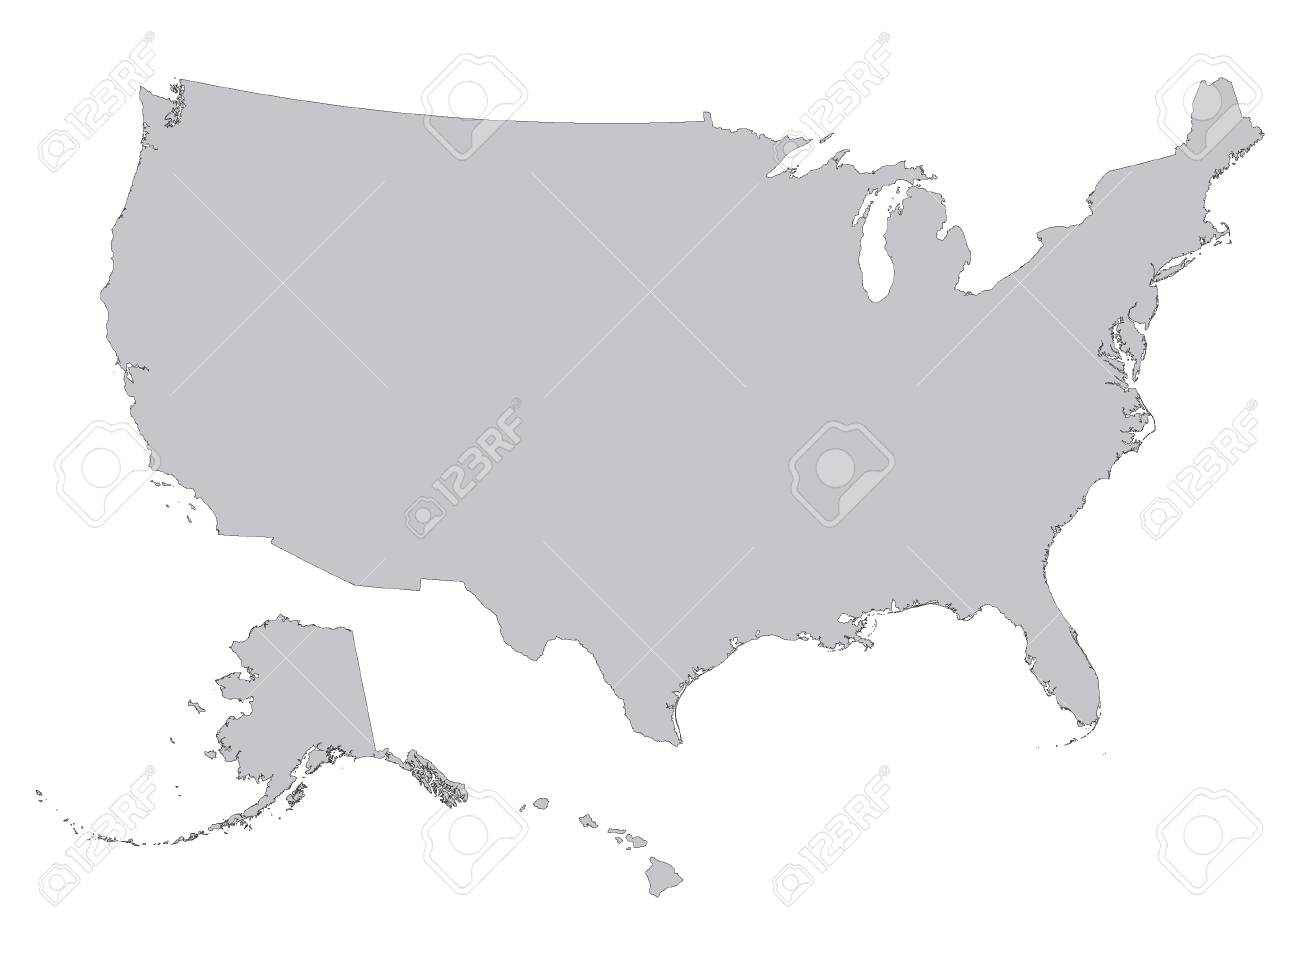 Vector illustration of the Gray Outline Map of the United States..